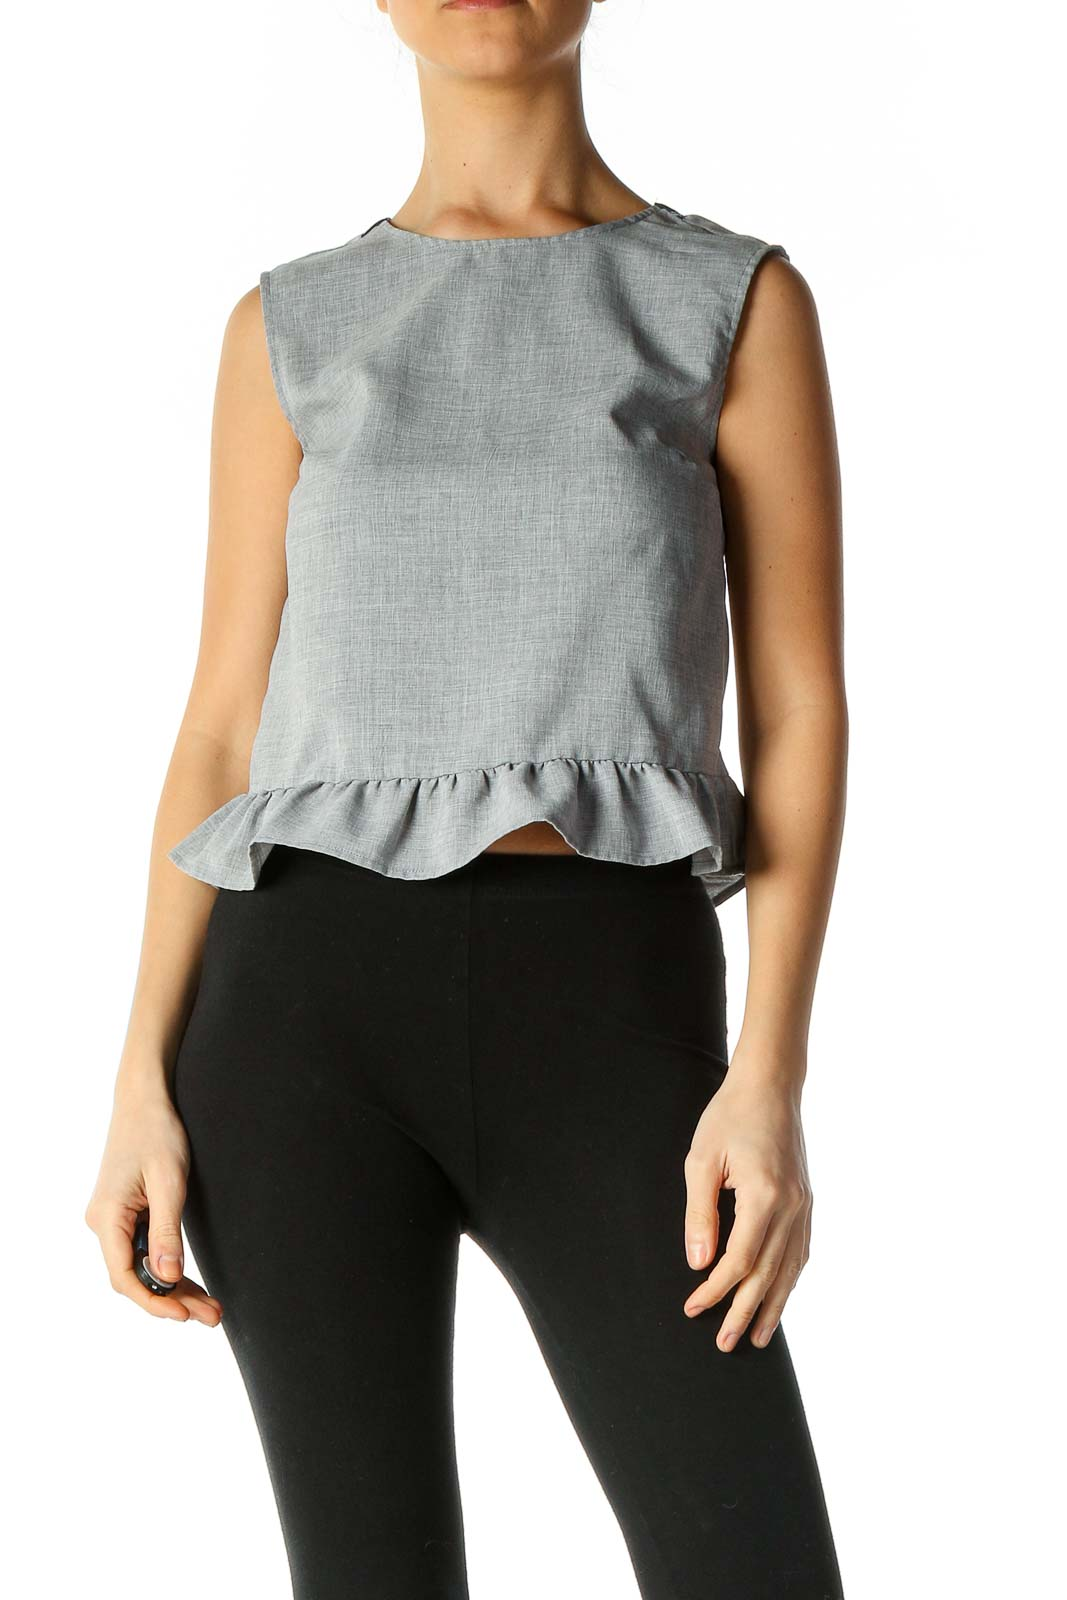 Gray Solid Sleeveless Ruffle Top Front